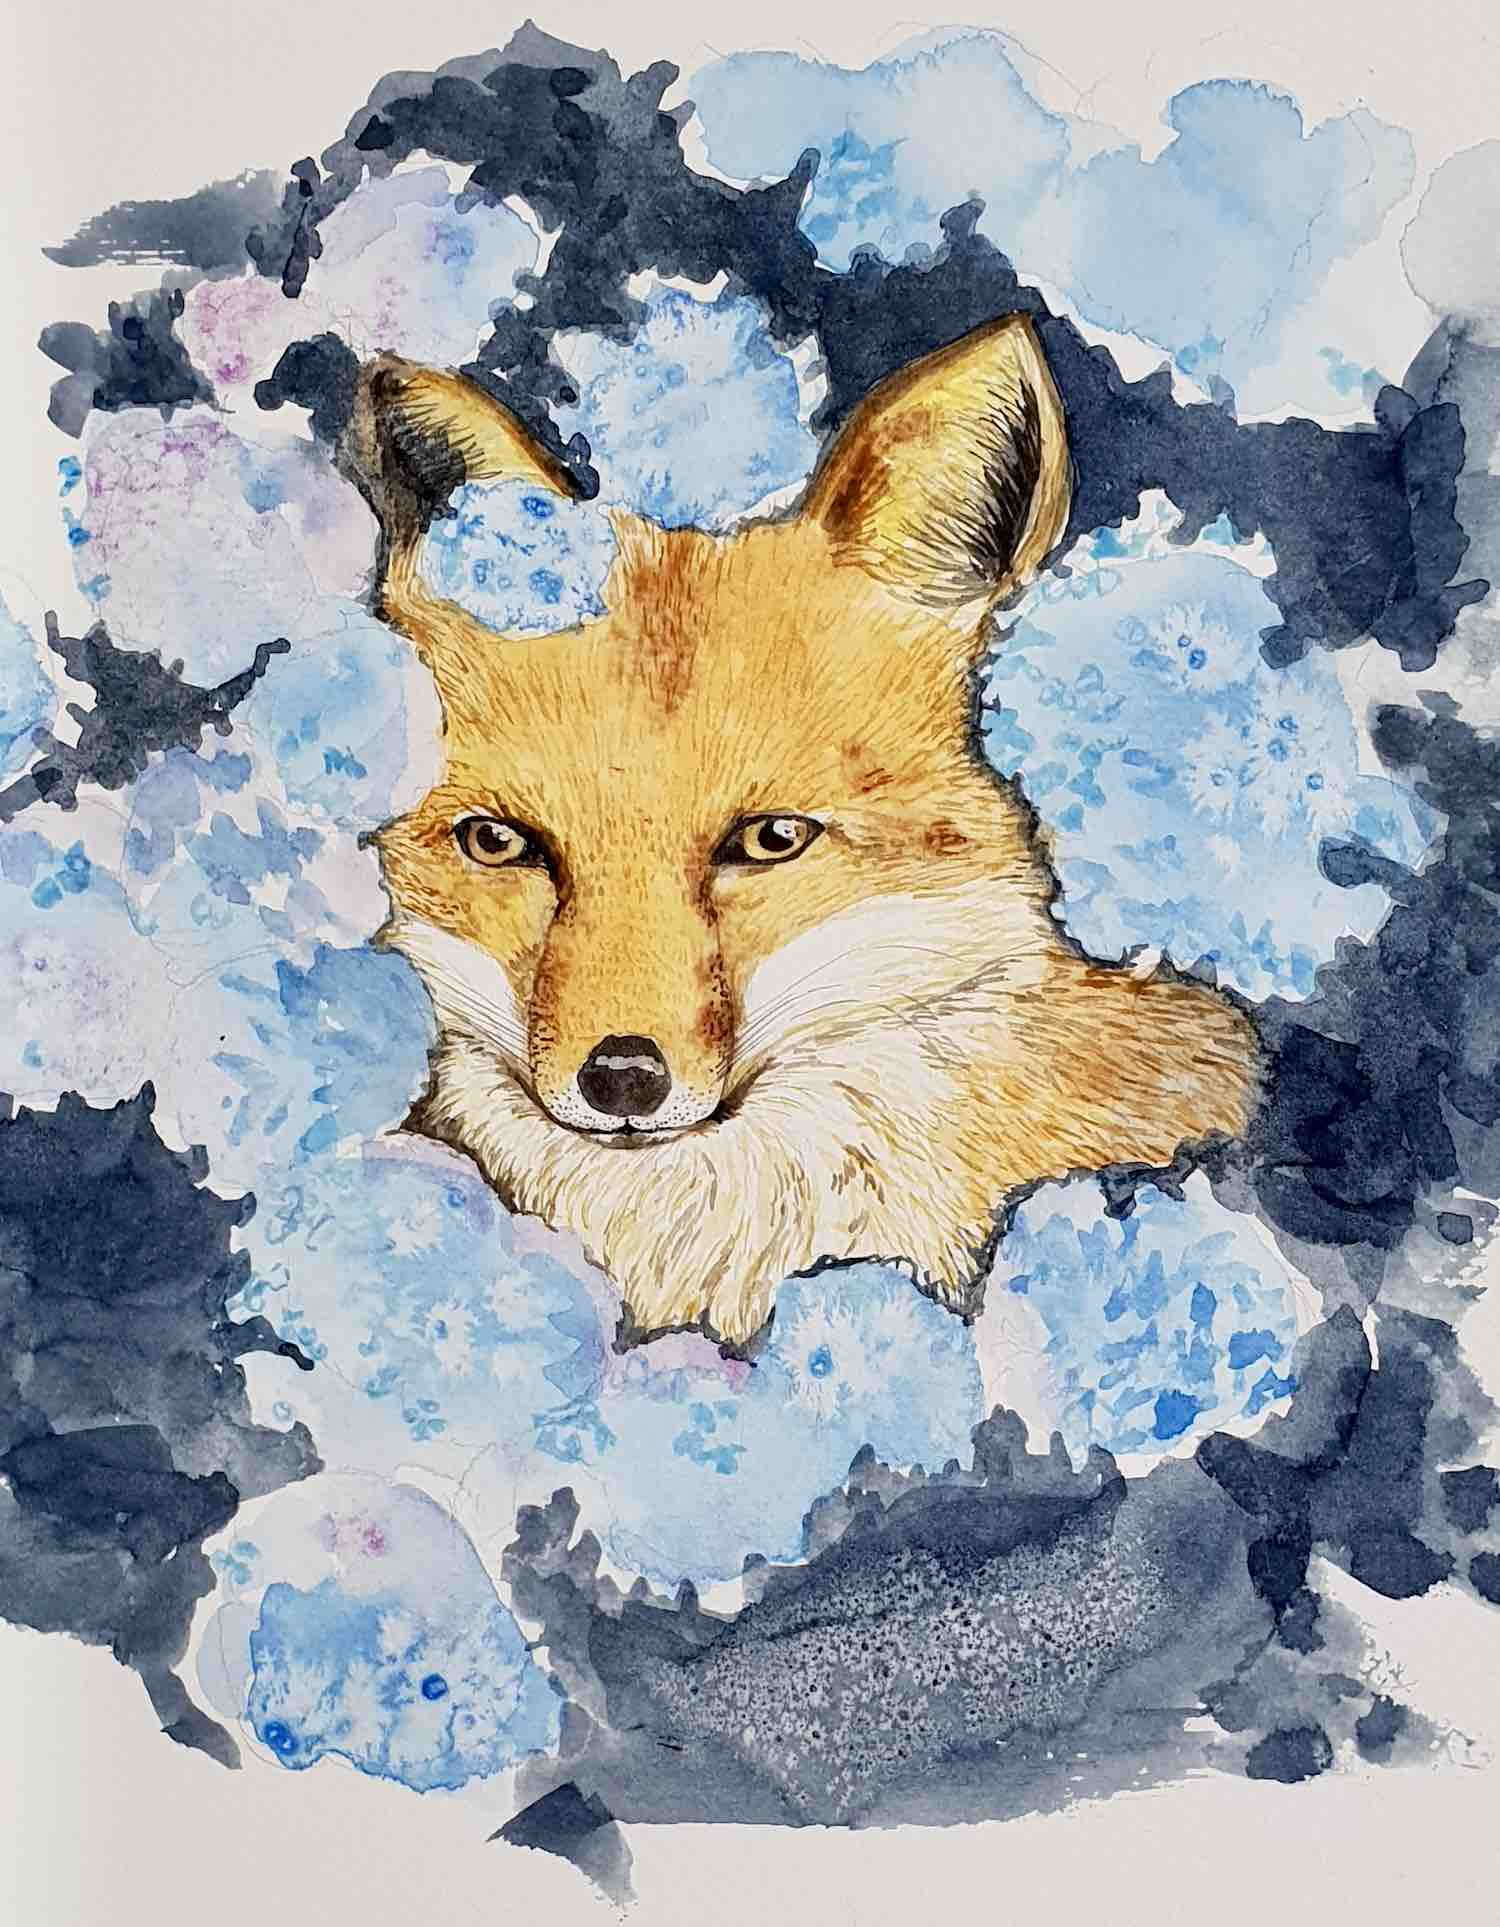 Illustration of fox in blue surrounds